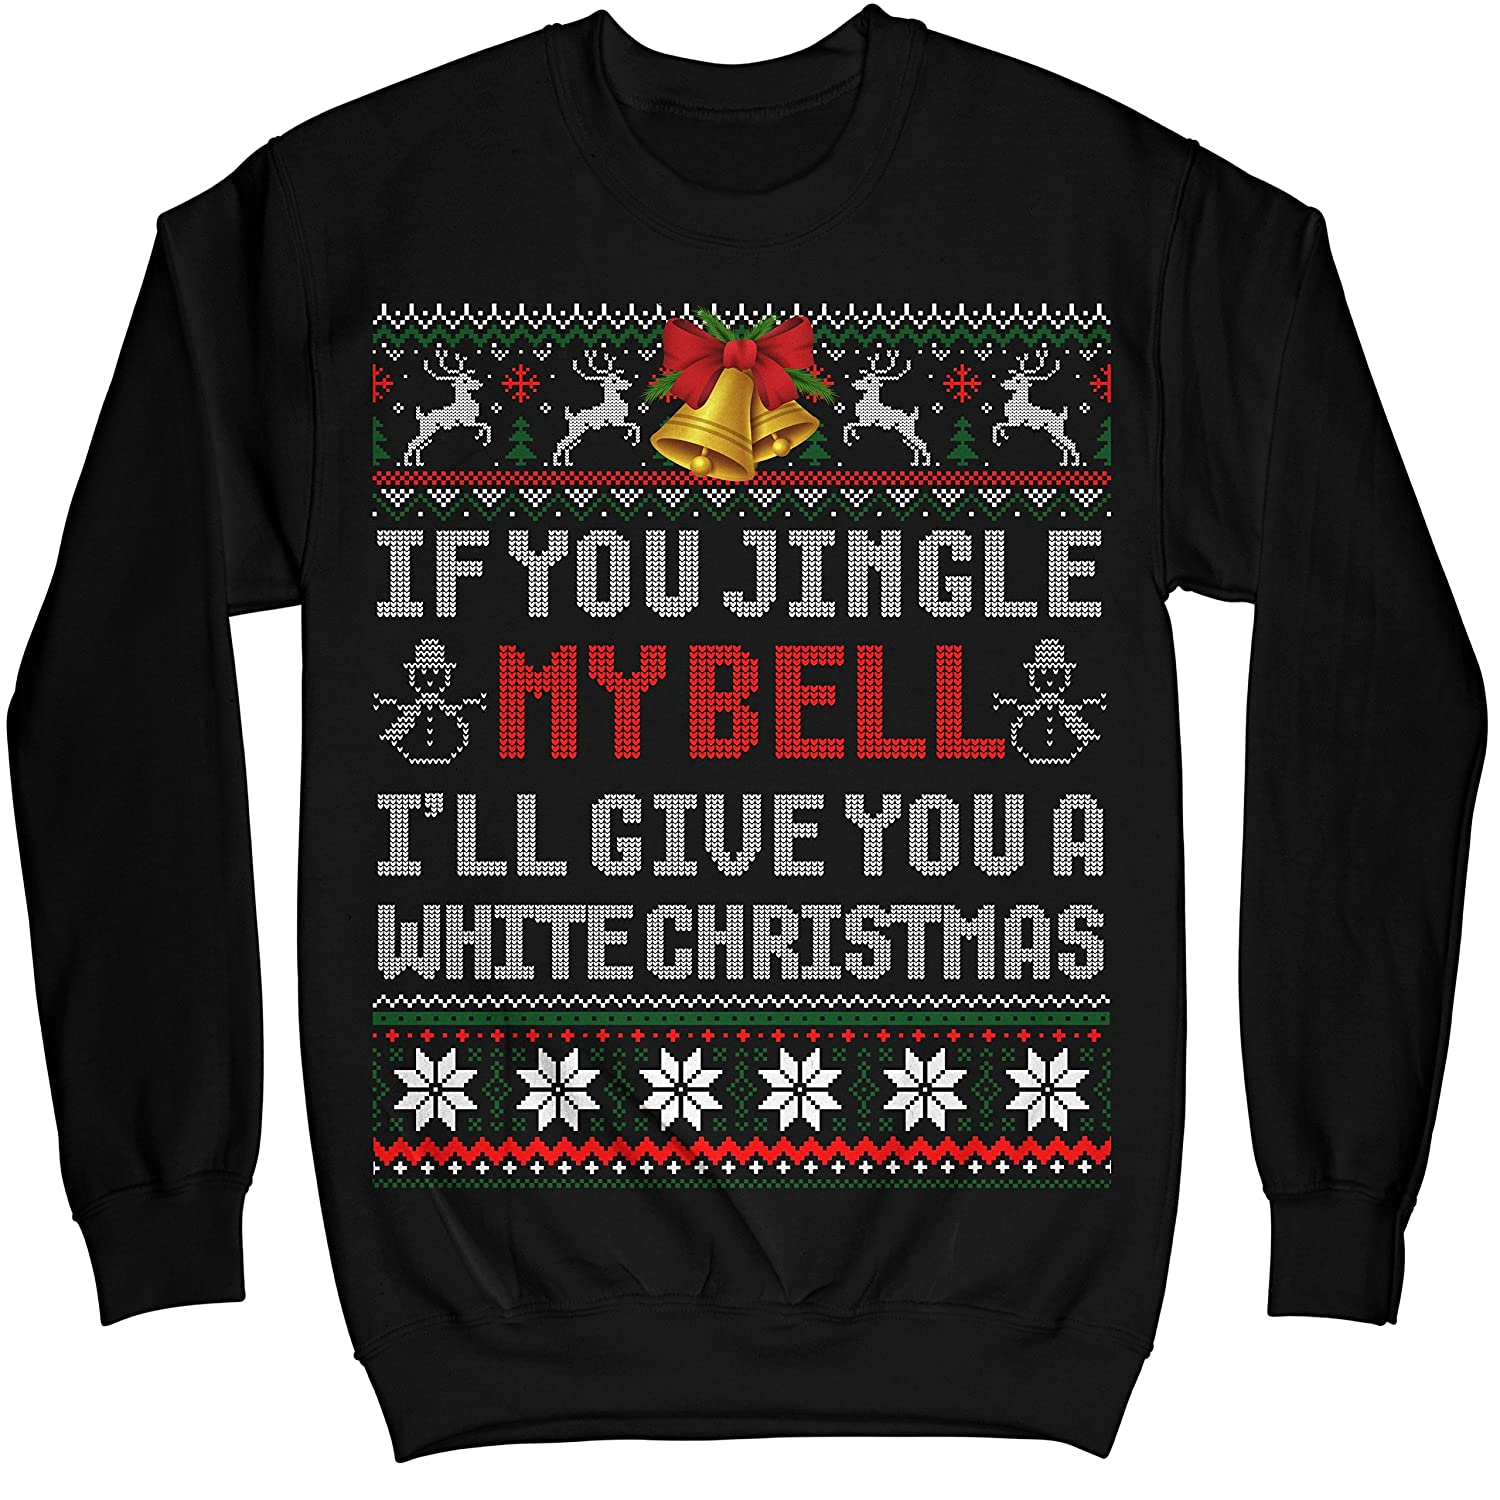 Apparel Jingle My Bells Funny Adult Christmas Ugly Sweater Noel Merry Xmas Swe Shirts